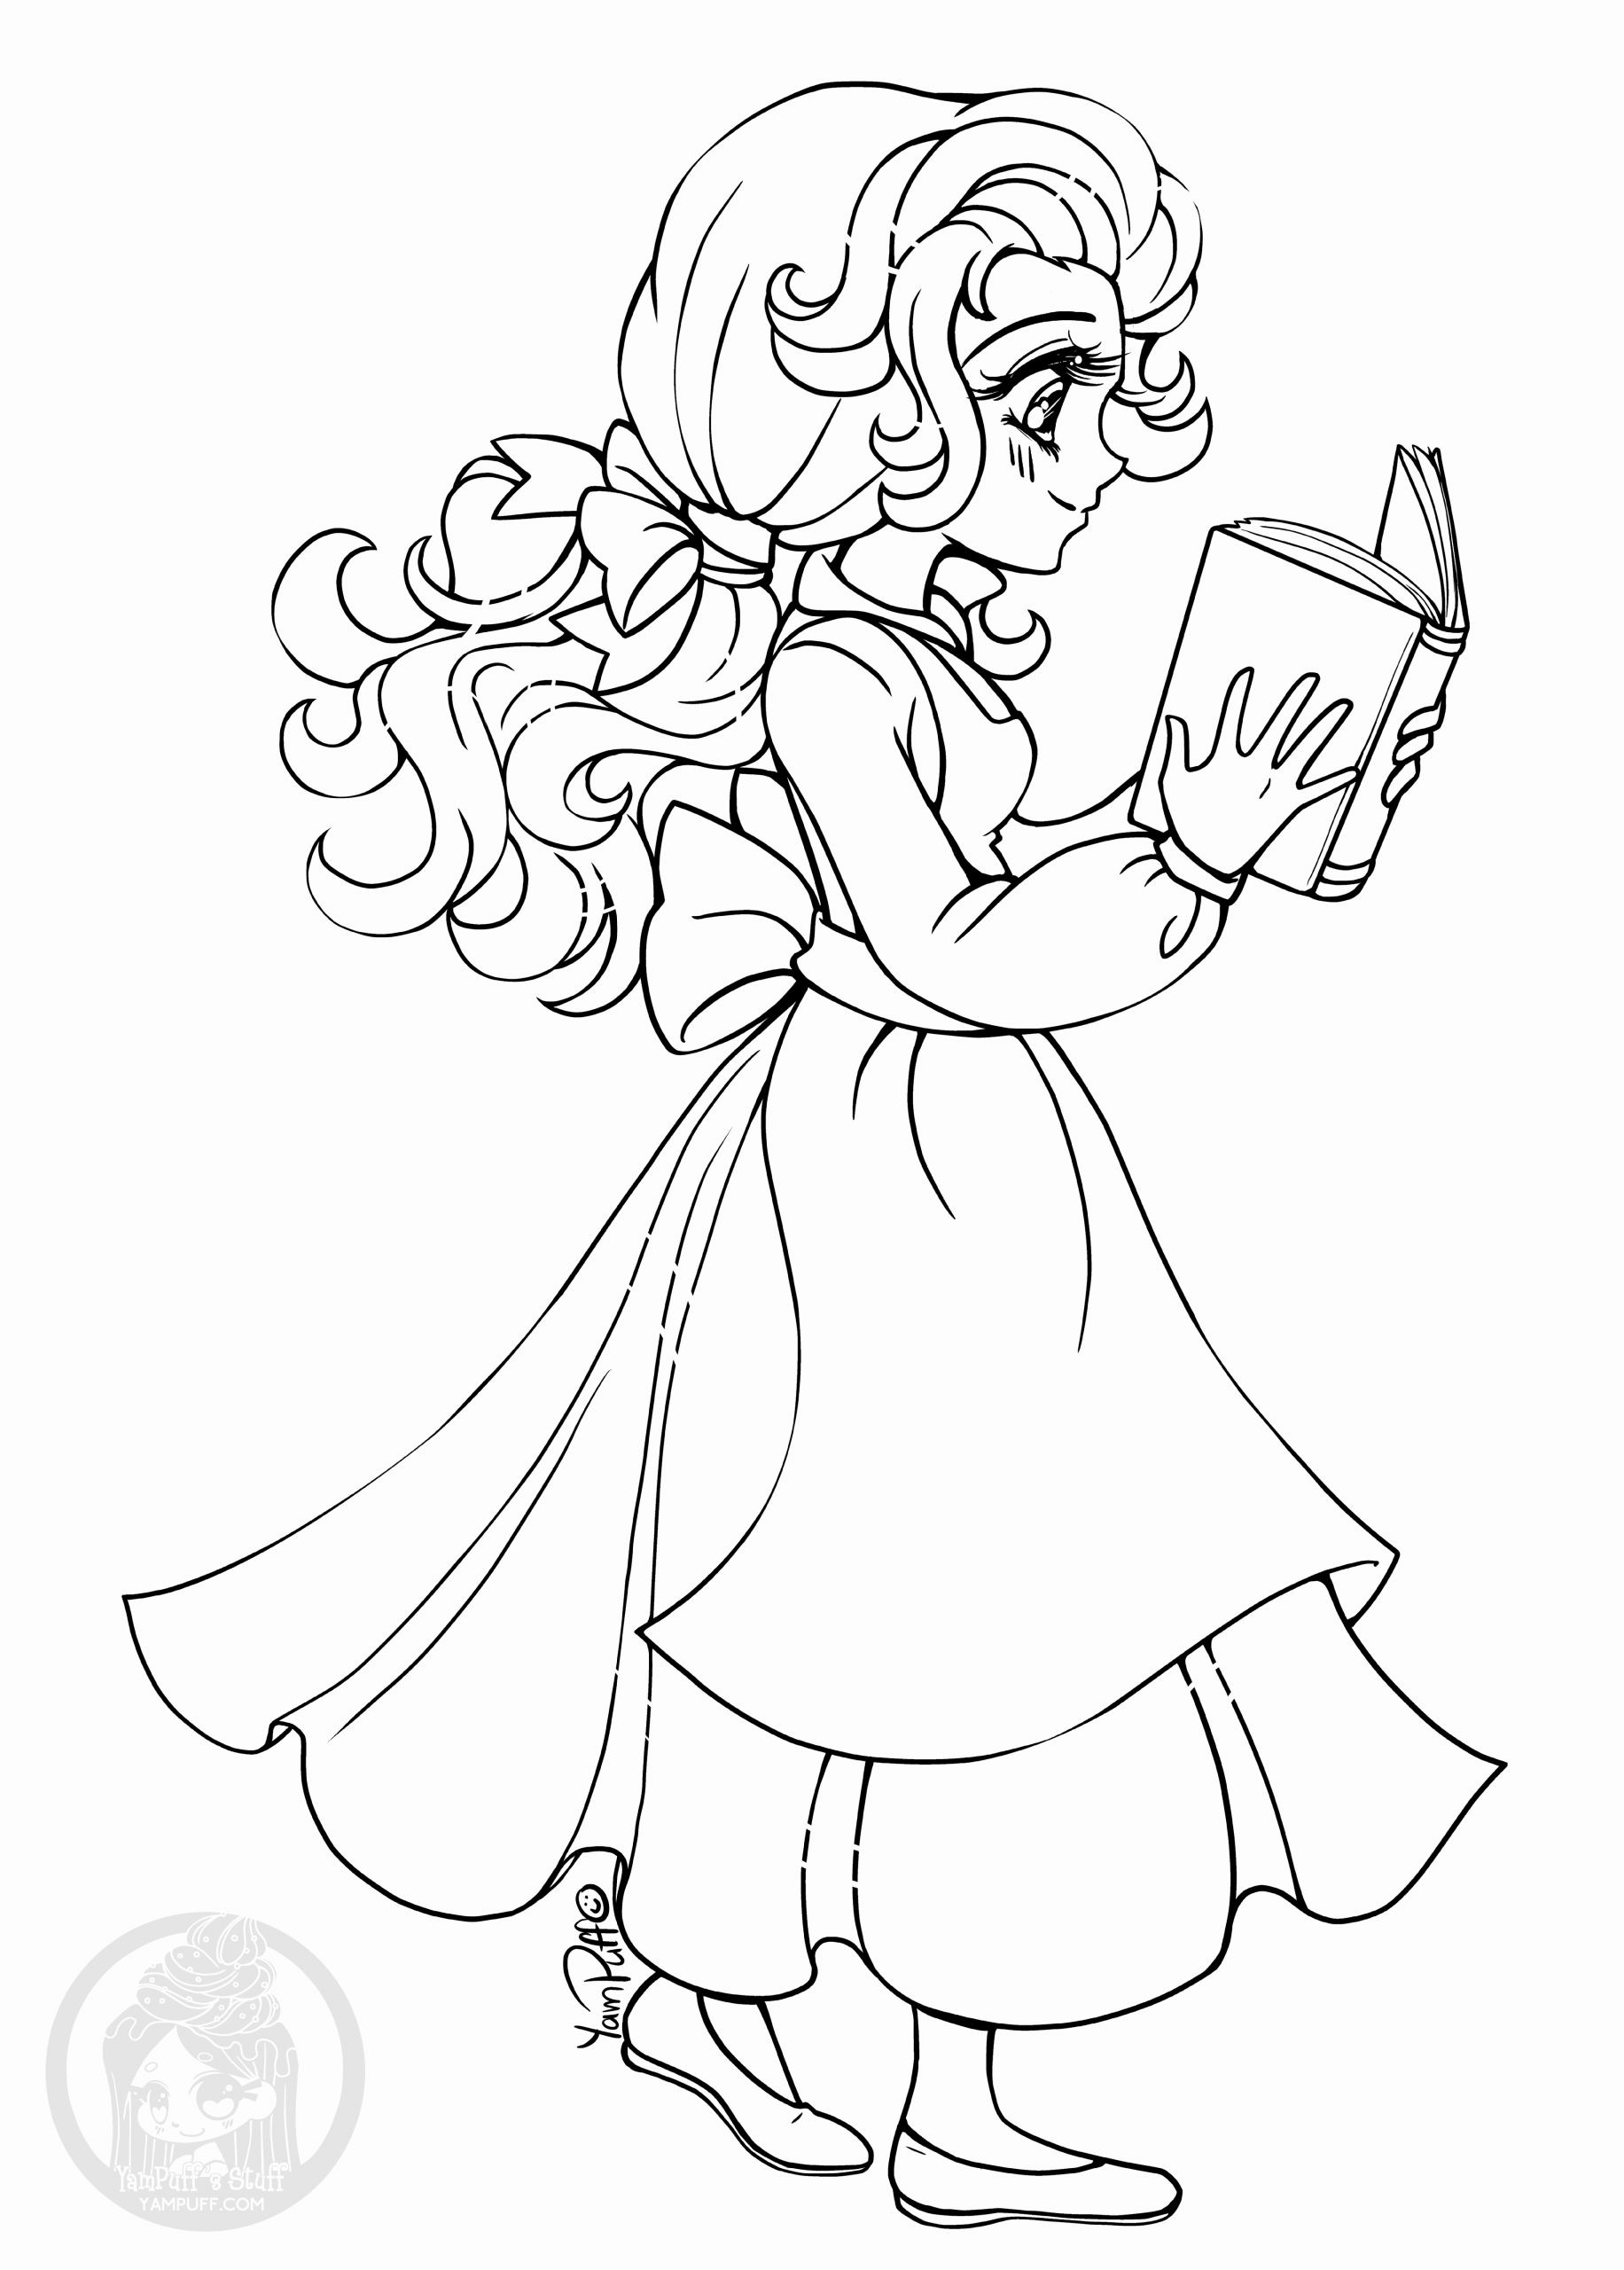 Anime Disney Princess Coloring Pages Fresh Fanart Free Chibi Colouring Pages Yampuff S St In 2020 Disney Princess Colors Chibi Coloring Pages Princess Coloring Pages